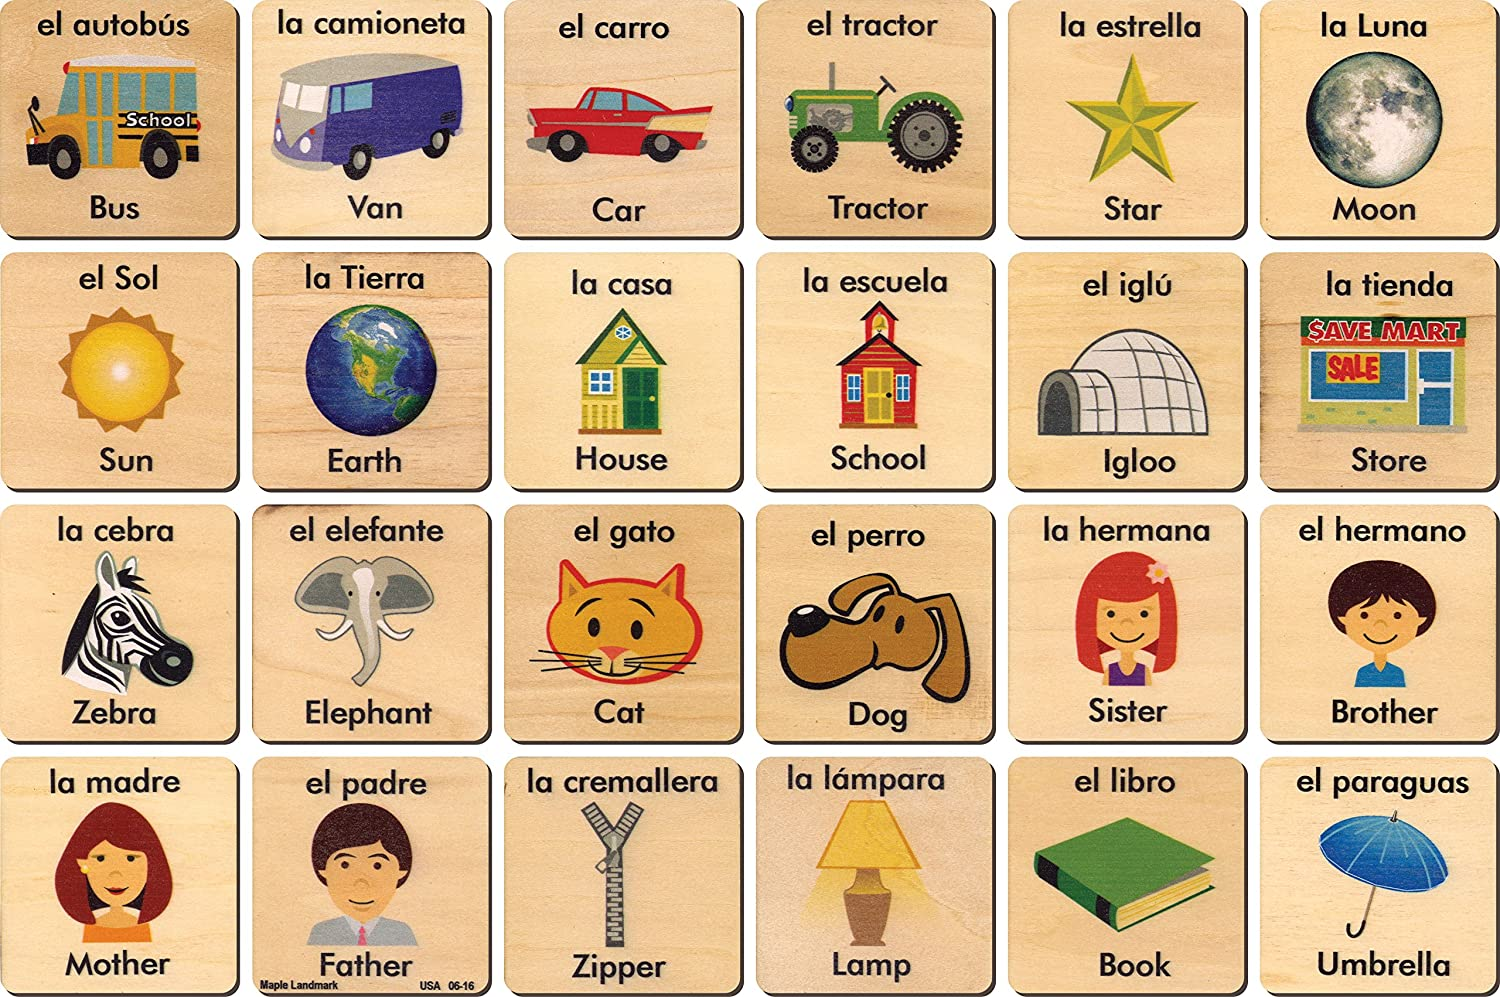 Amazon.com: Teach and Play Tiles - Spanish and English - Made in USA: Toys & Games